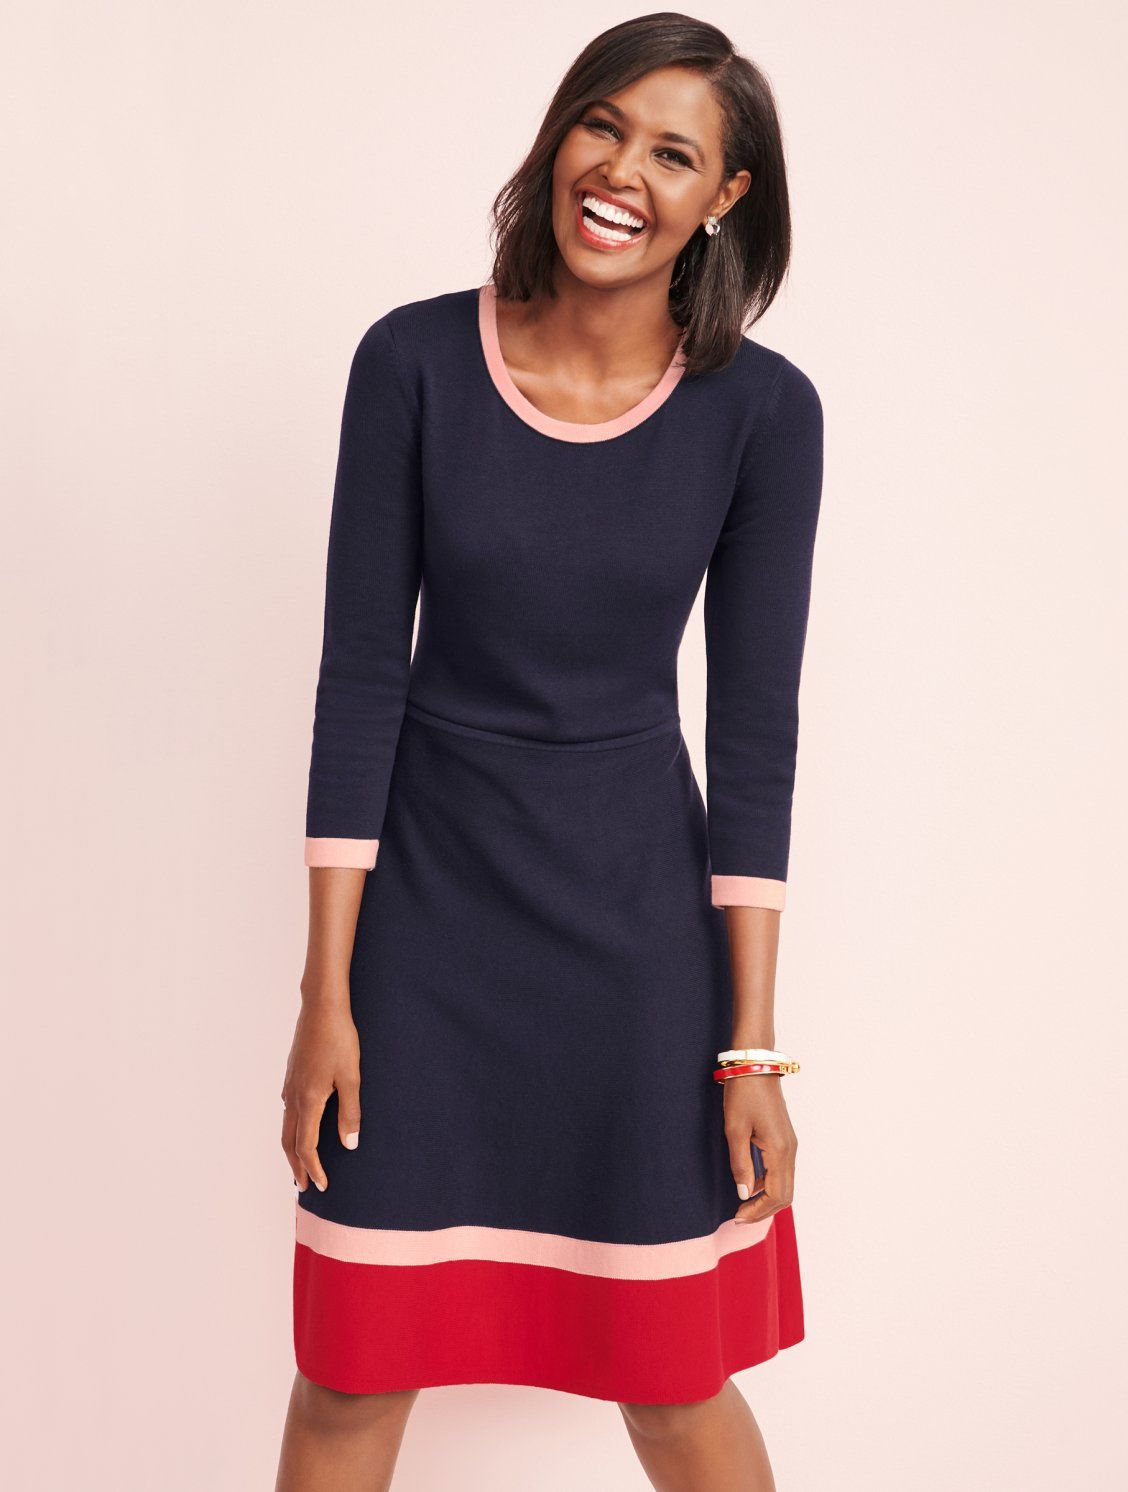 34dc0b93081 This flattering sweater dress features contrast stripe detailing at its  jewel neckline and three-quarter sleeves, plus a bold stripe border.